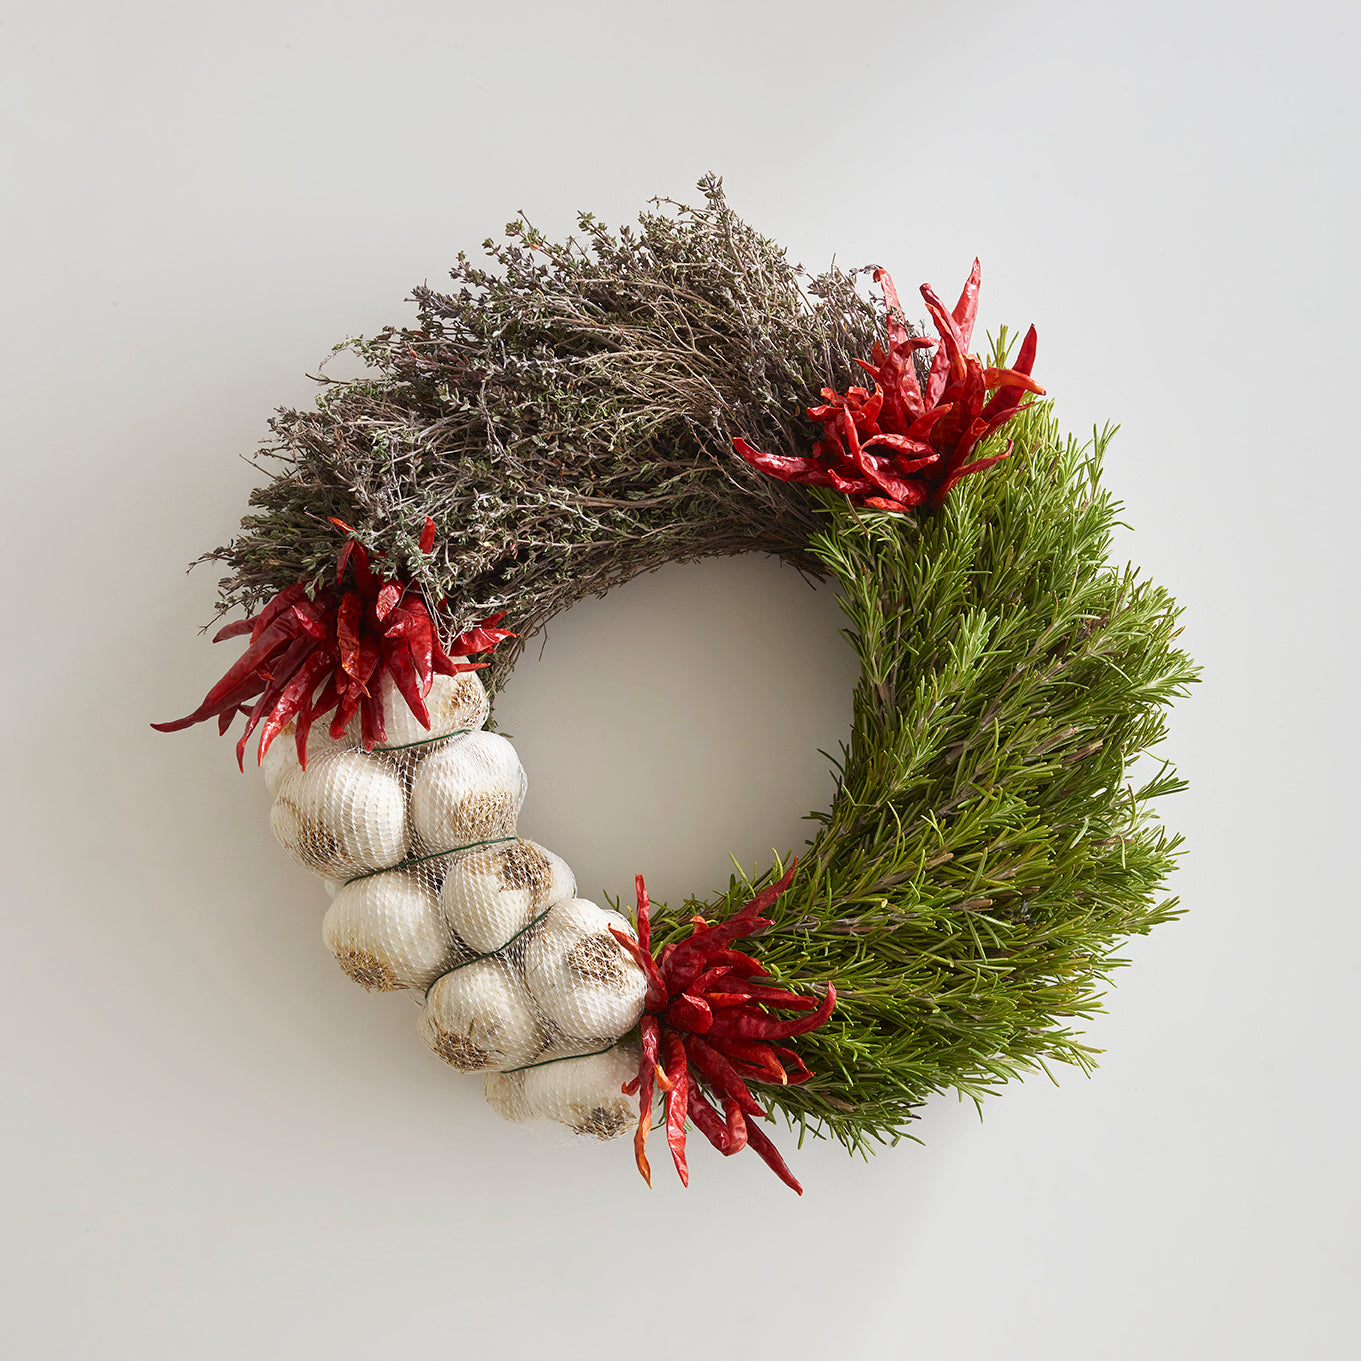 Garlic and Herb Wreath